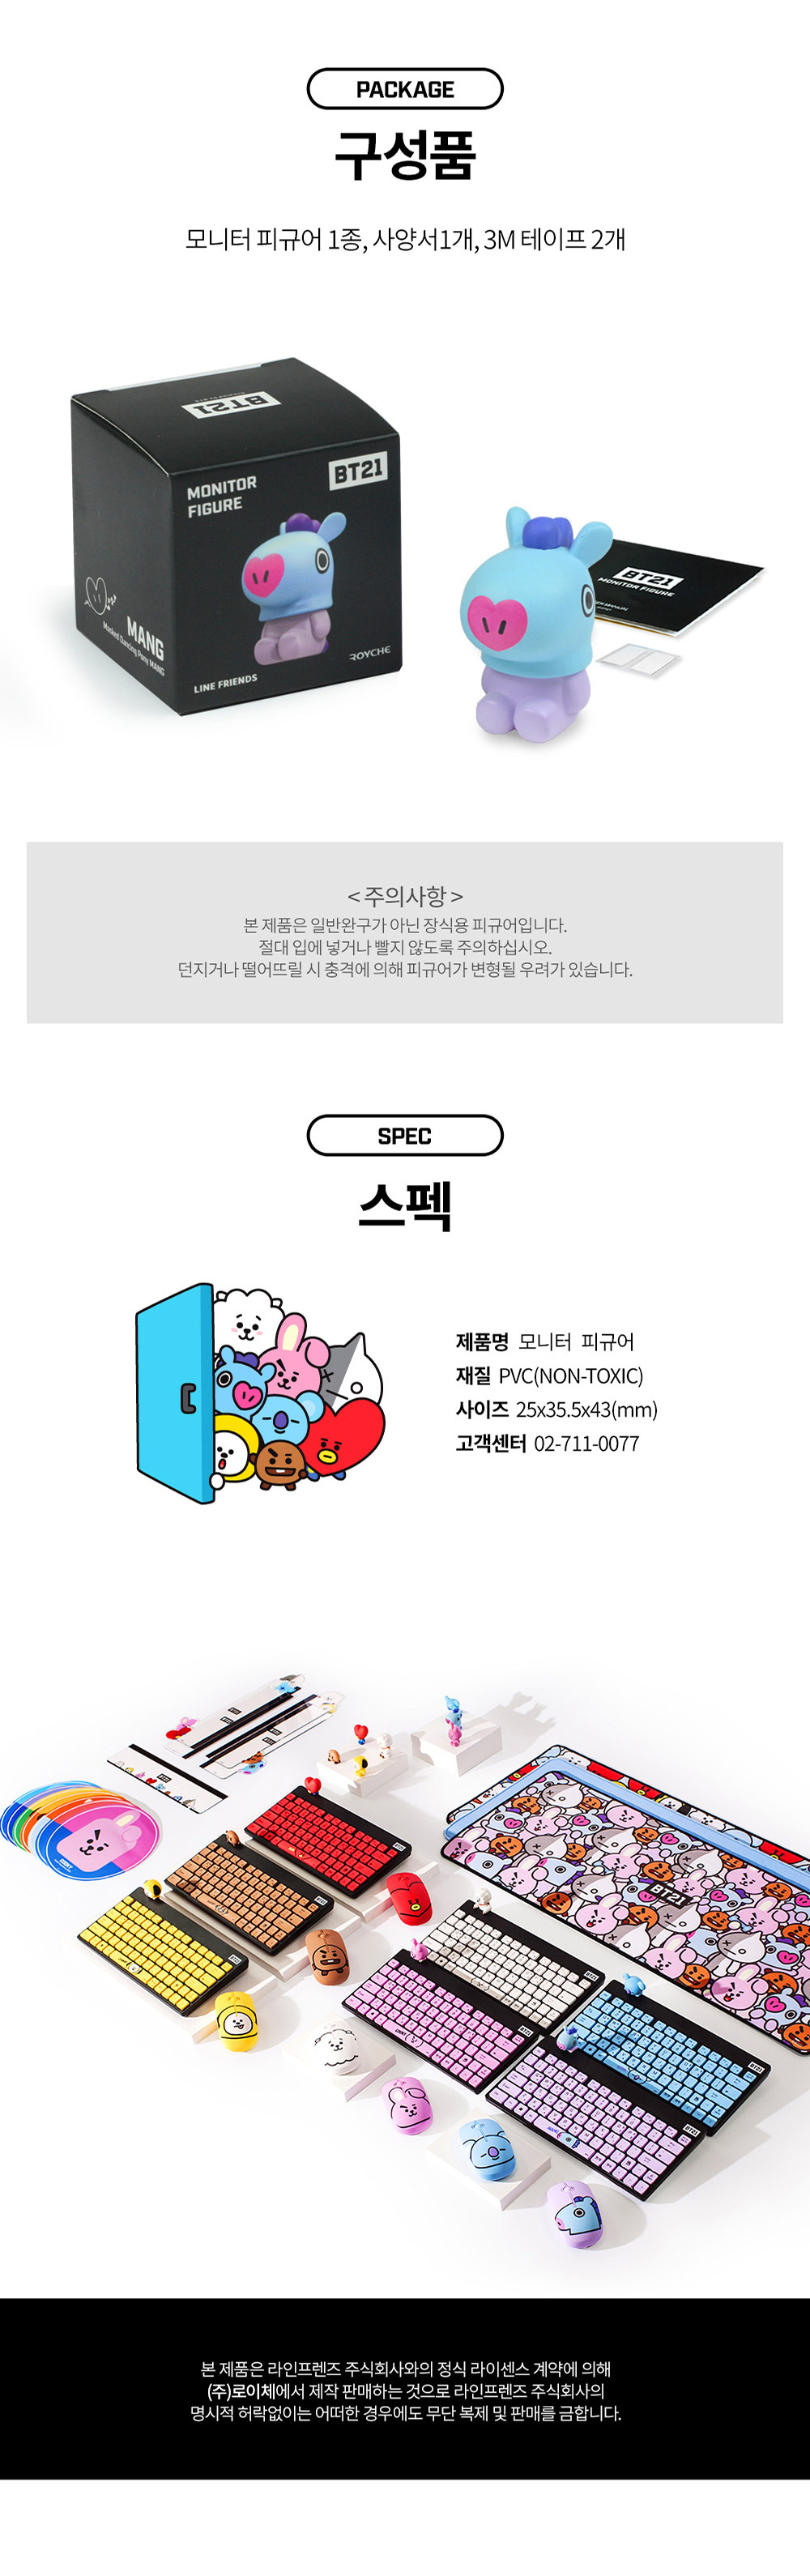 bt21_monitor_figure_04.jpg